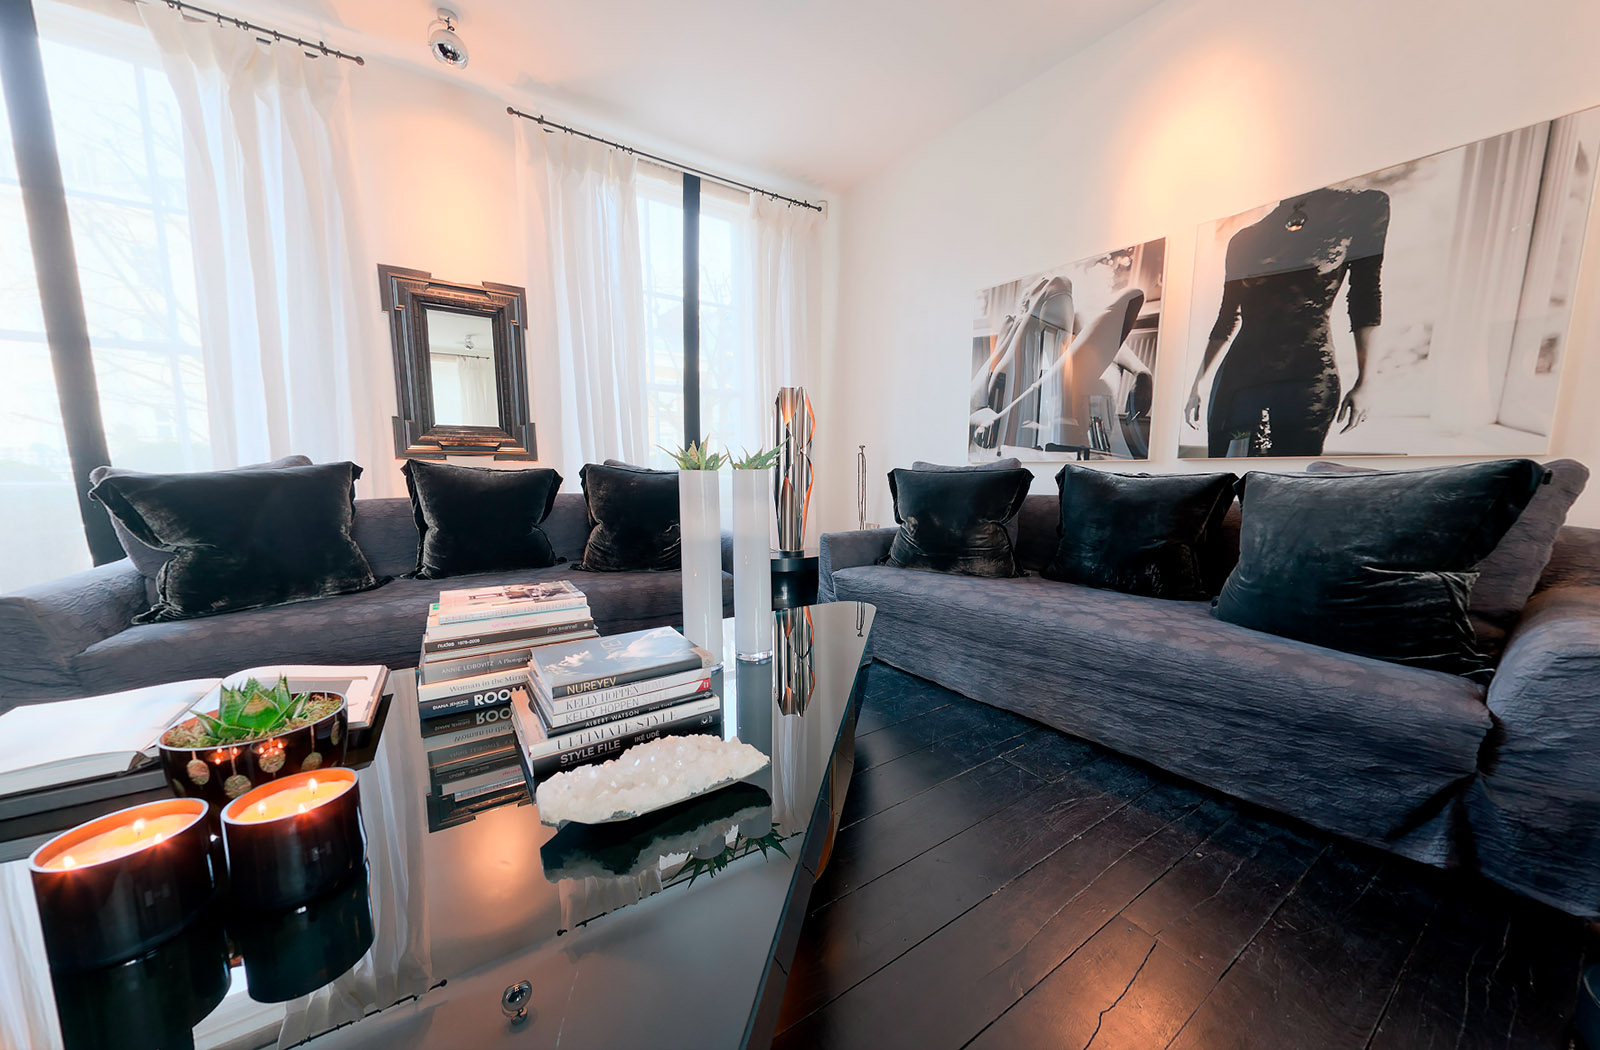 Kelly hoppen house notting hill for House notting hill